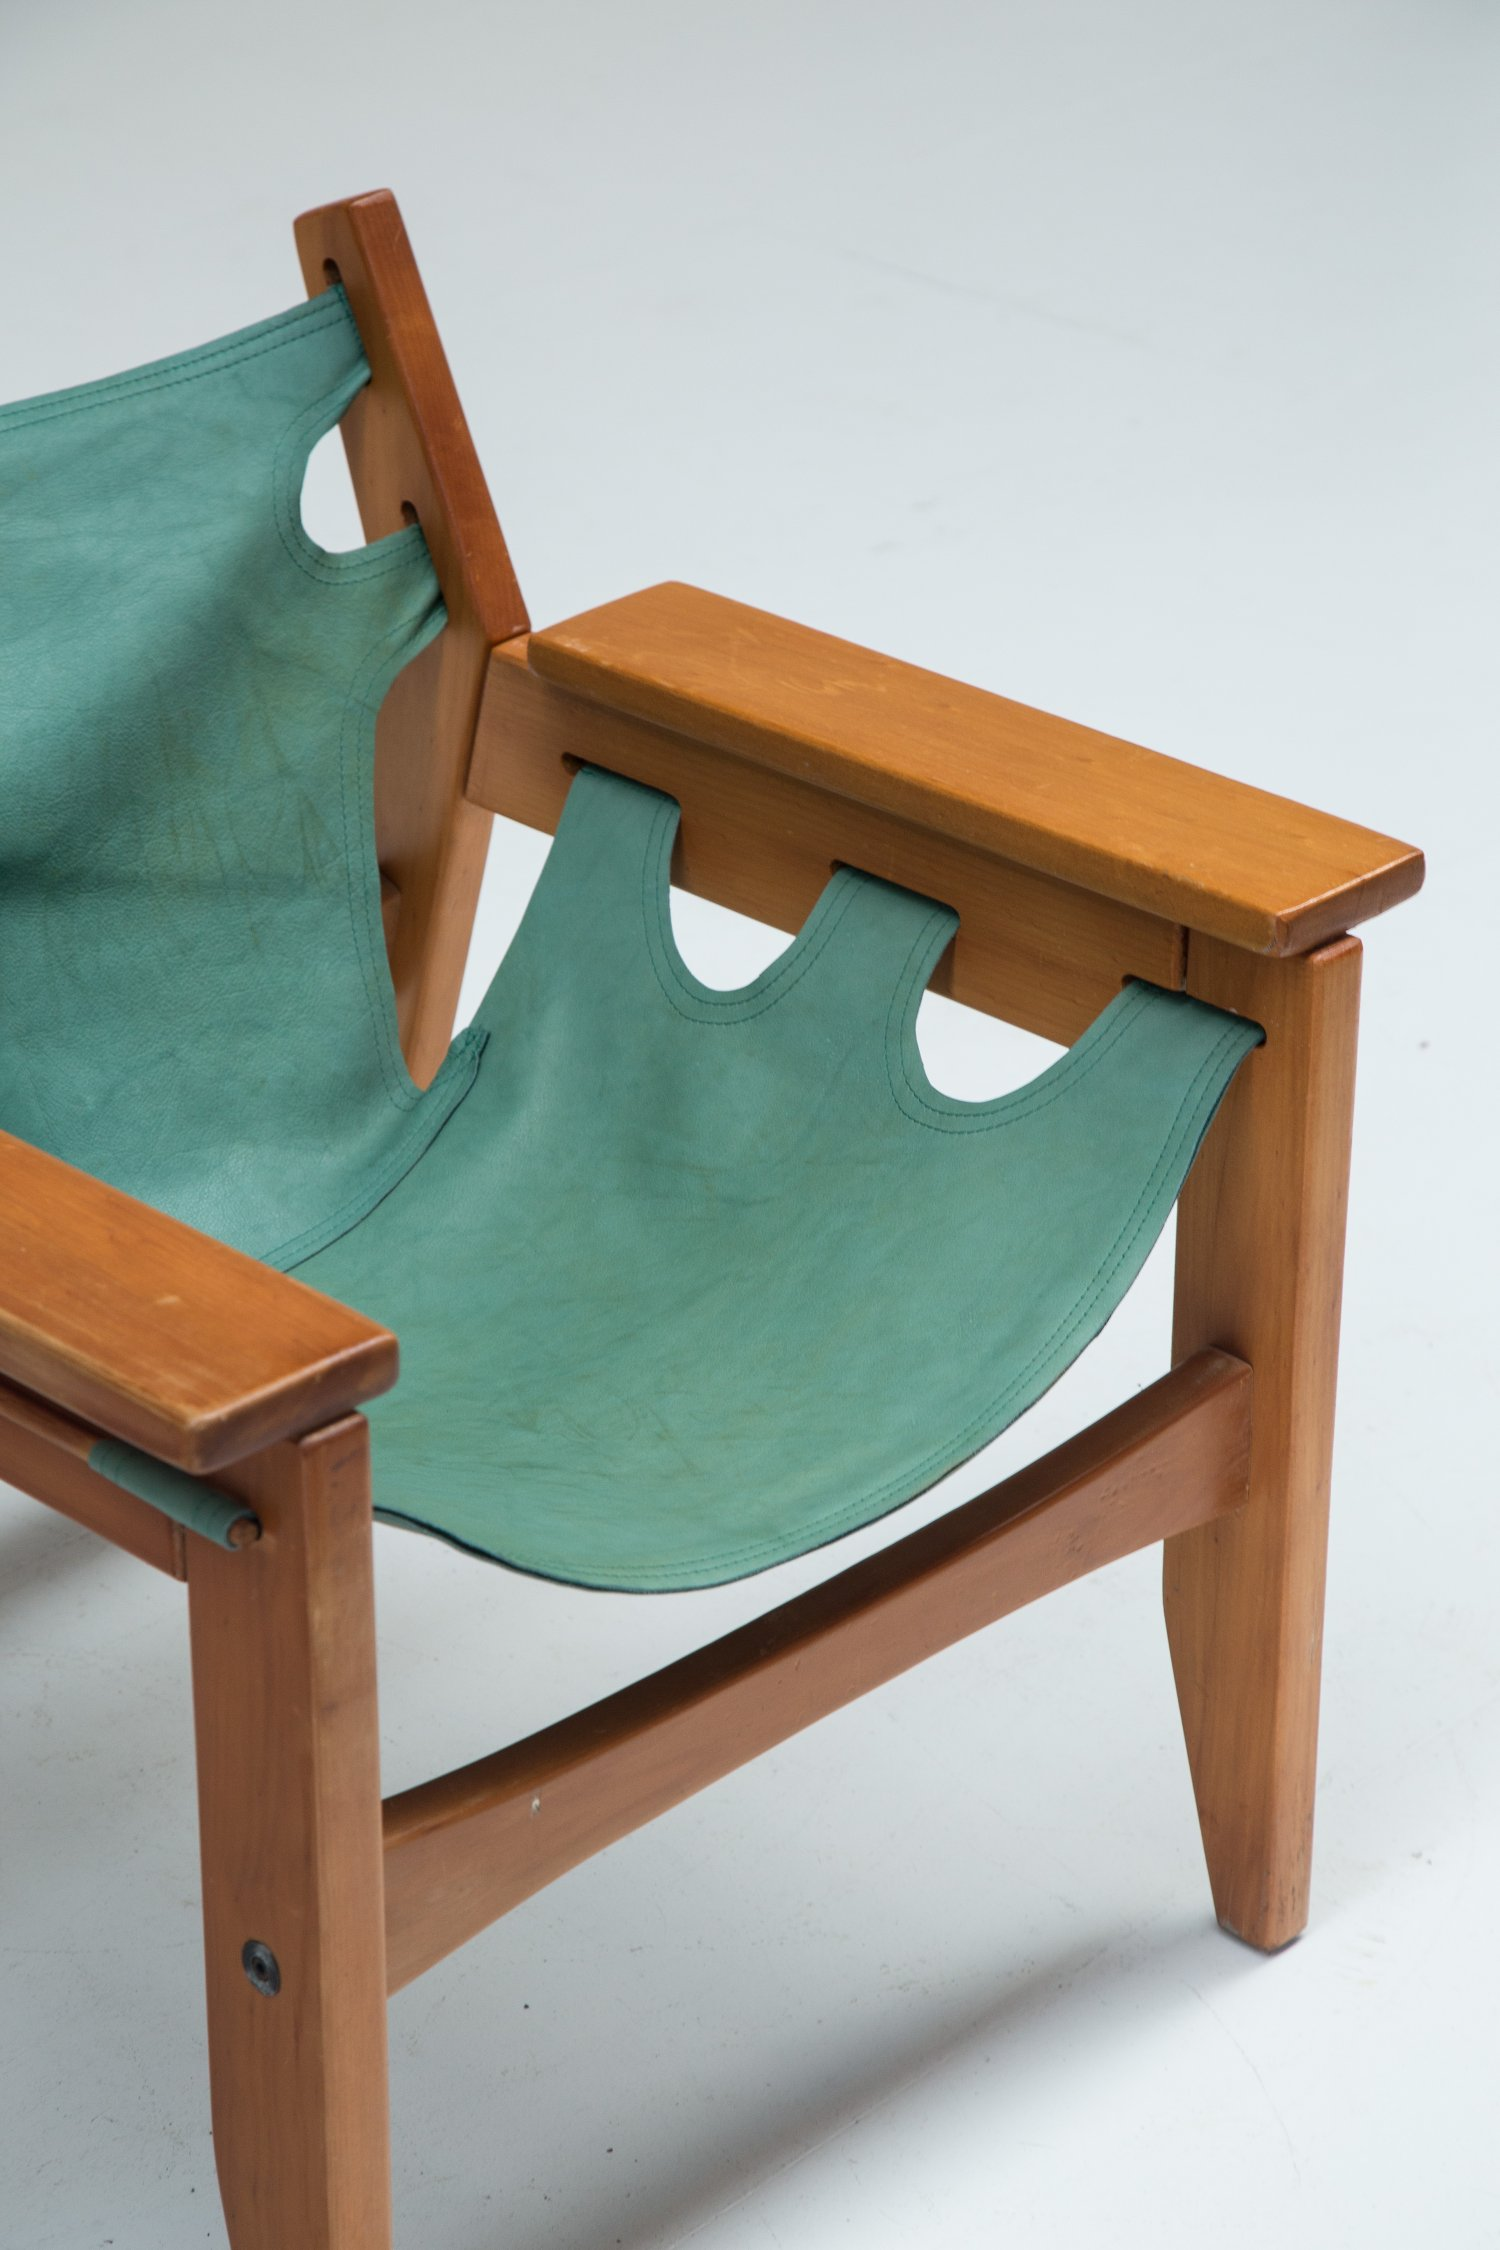 Pair of Sergio Rodrigues 'Killin' chairs